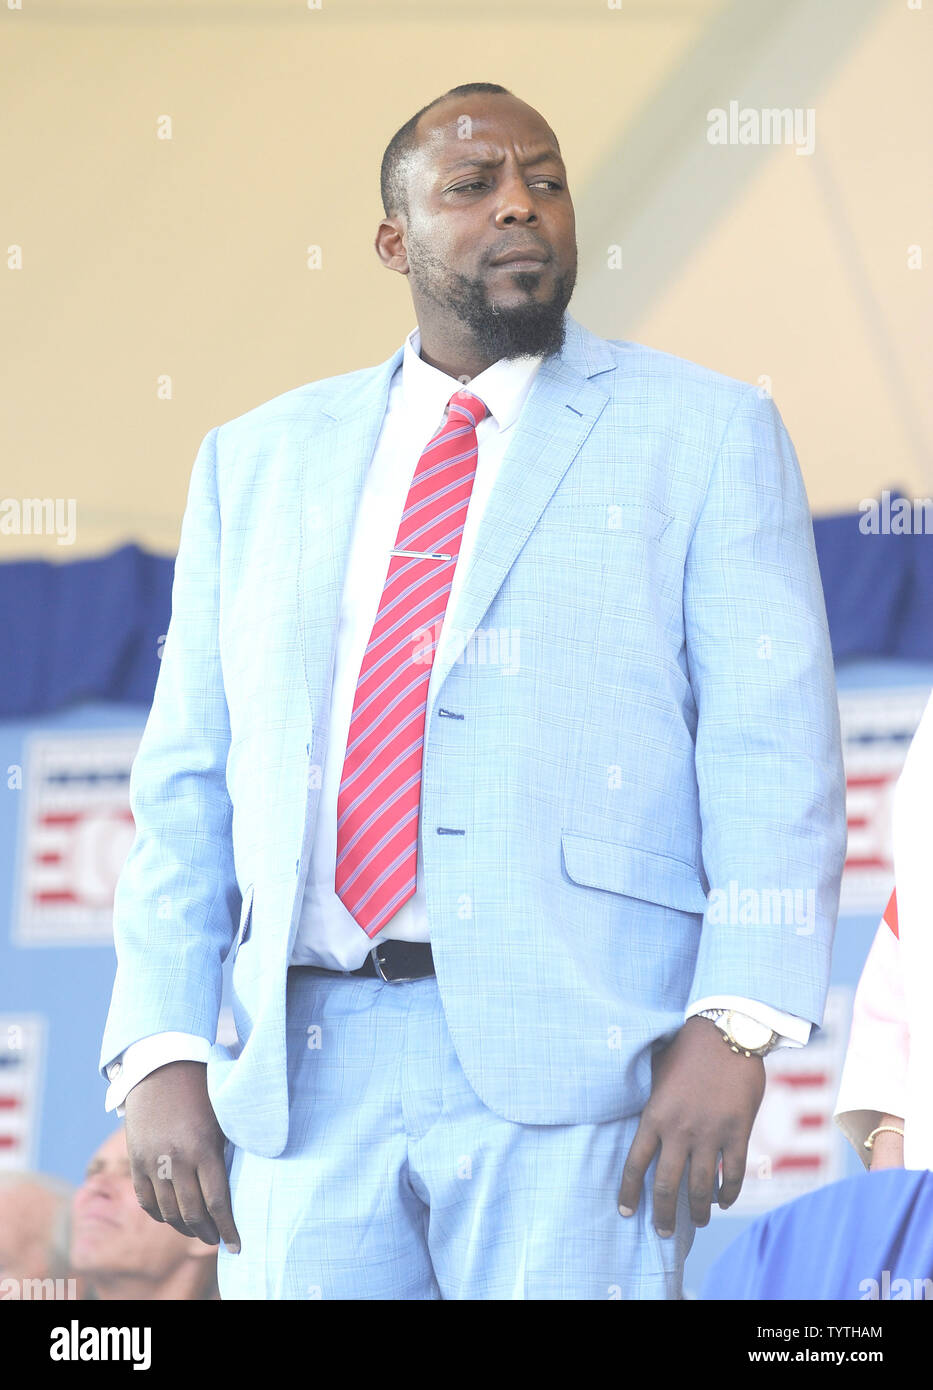 Vladmir Guerrero delivers his  Baseball Hall of Fame induction speech at the Clark Sports Center in Cooperstown, NY on July 29, 2018.  A record 60 Hall of Famers are scheduled to be in Central New York to honor Vladimir Guerrero, Trevor Hoffman, Chipper Jones, Jack Morris, Jim Thome and Alan Trammell at the National Baseball Hall of Fame and Museum during Hall of Fame Weekend on July 27-30.     Photo by George Napolitano/UPI - Stock Image